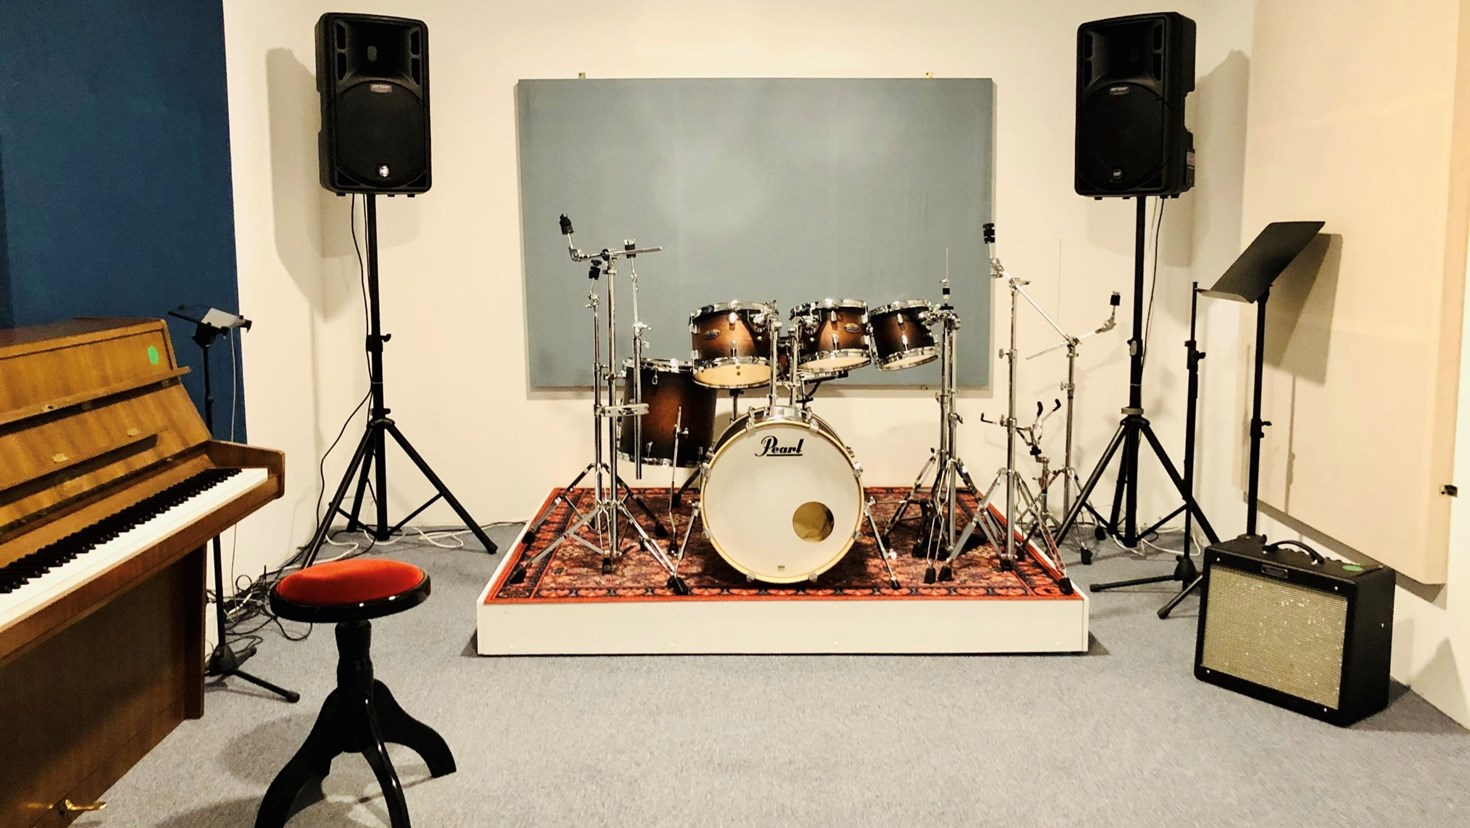 Using Nexudus to Manage a Rehearsal Space